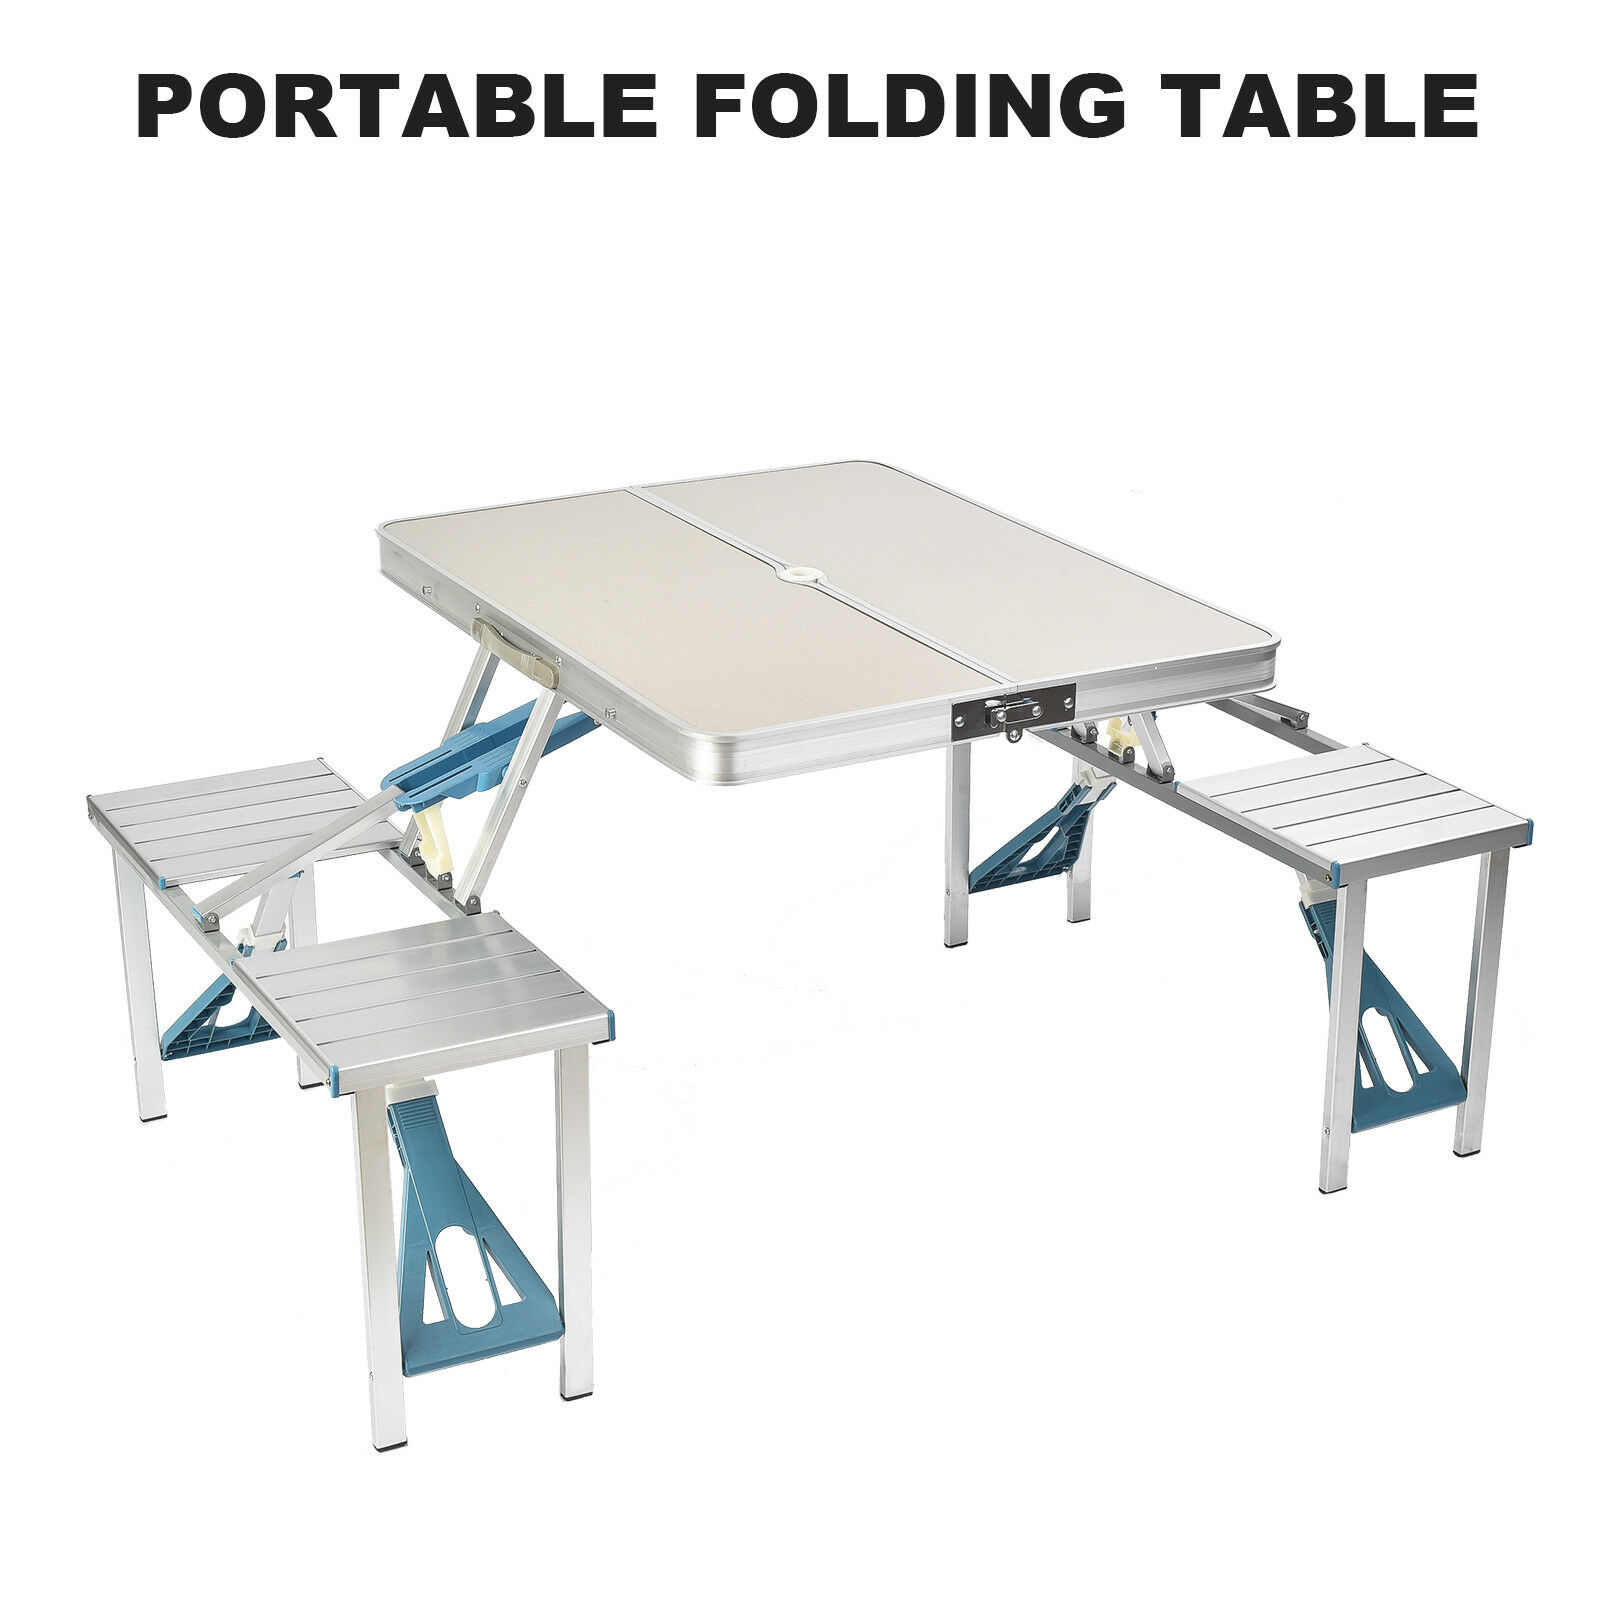 Portable Folding Camping Picnic Table Chair Set for Garden BBQ Party Outdoor